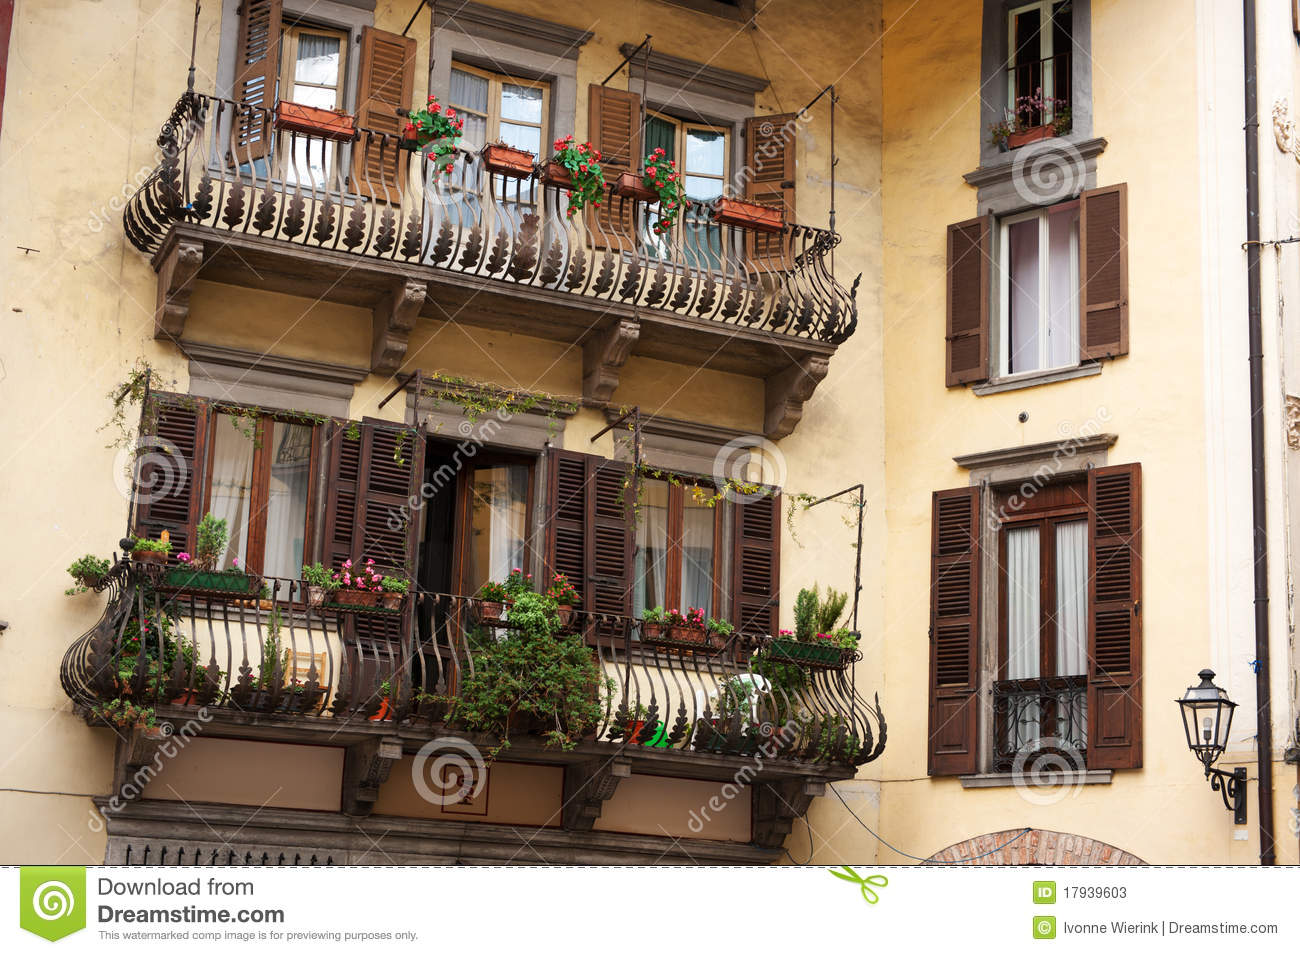 Italian balconies stock photos image 17939603 for Balcony in italian